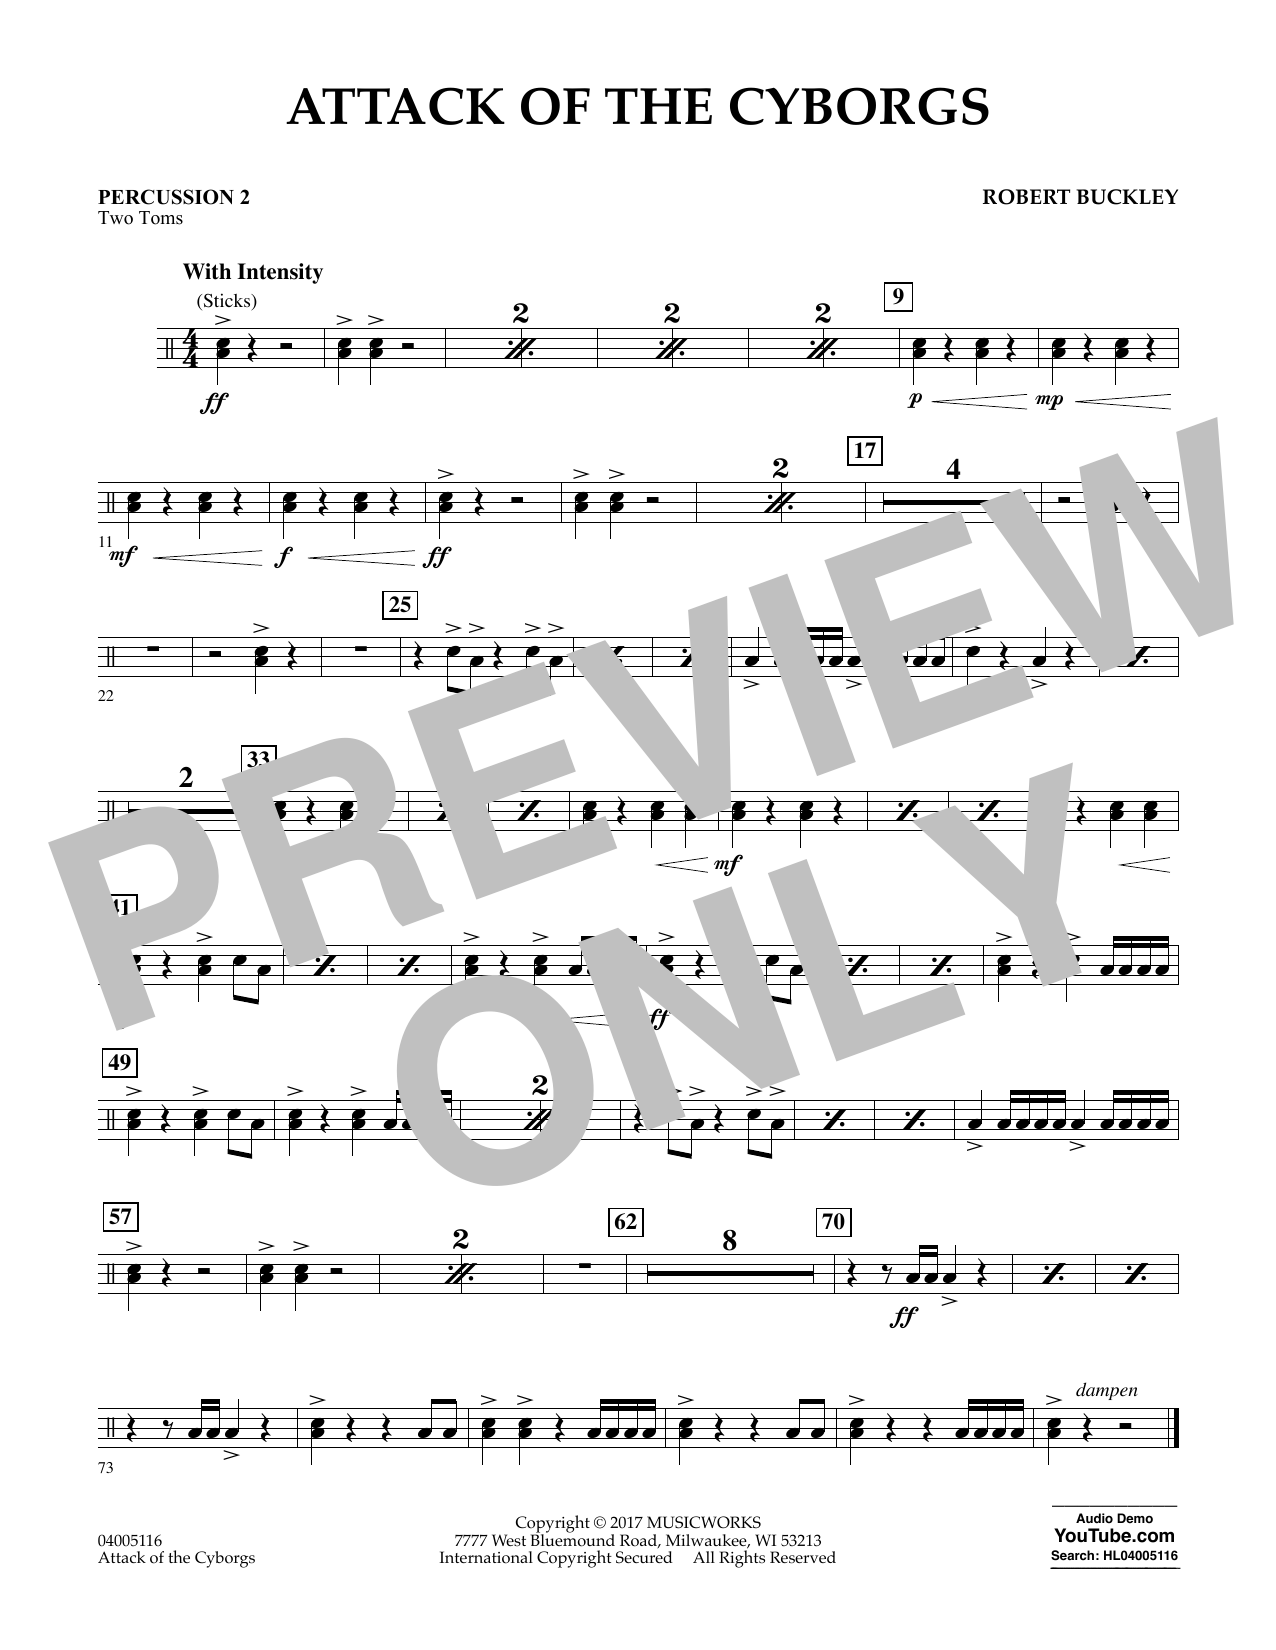 Robert Buckley Attack of the Cyborgs - Percussion 2 sheet music notes and chords. Download Printable PDF.